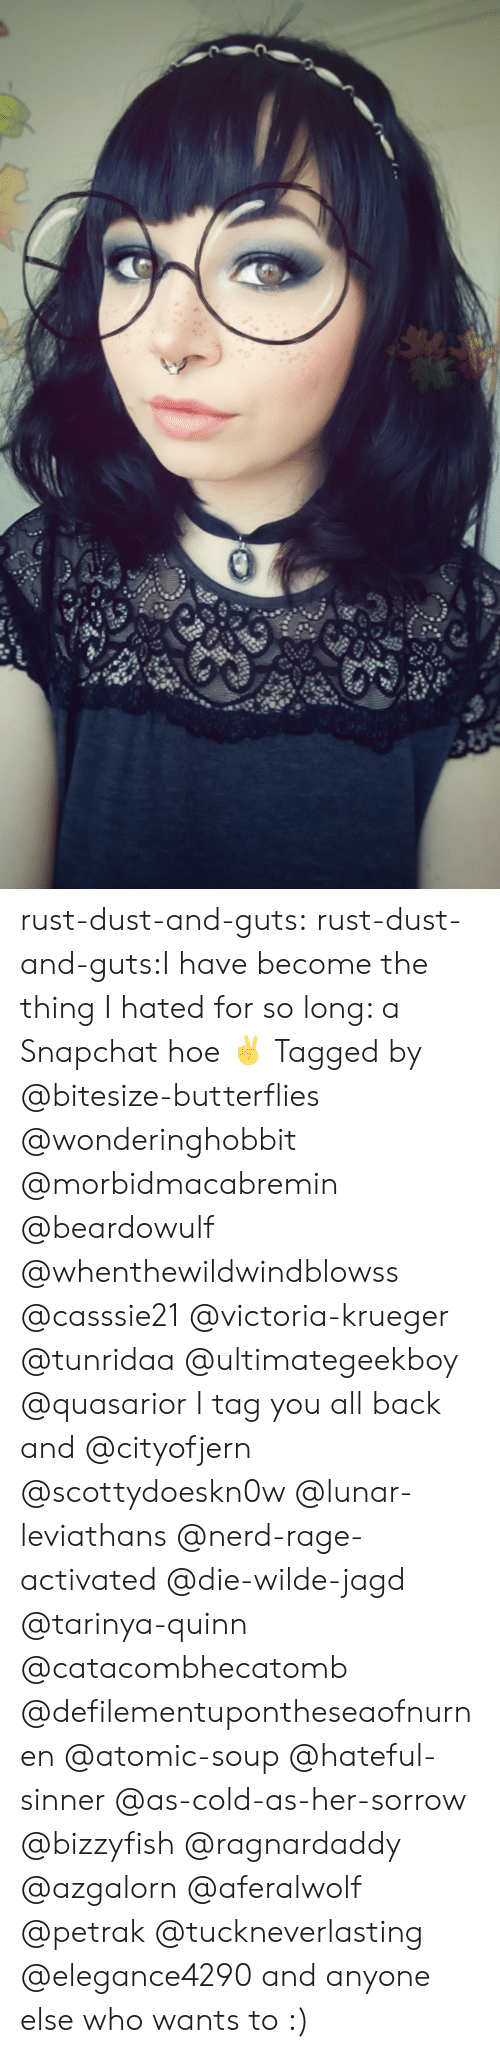 Krueger: rust-dust-and-guts:  rust-dust-and-guts:I have become the thing I hated for so long: a Snapchat hoe ✌️ Tagged by @bitesize-butterflies @wonderinghobbit @morbidmacabremin @beardowulf @whenthewildwindblowss @casssie21 @victoria-krueger @tunridaa @ultimategeekboy @quasarior I tag you all back and @cityofjern @scottydoeskn0w @lunar-leviathans @nerd-rage-activated @die-wilde-jagd @tarinya-quinn @catacombhecatomb @defilementupontheseaofnurnen @atomic-soup @hateful-sinner @as-cold-as-her-sorrow @bizzyfish @ragnardaddy @azgalorn @aferalwolf @petrak @tuckneverlasting @elegance4290 and anyone else who wants to :)